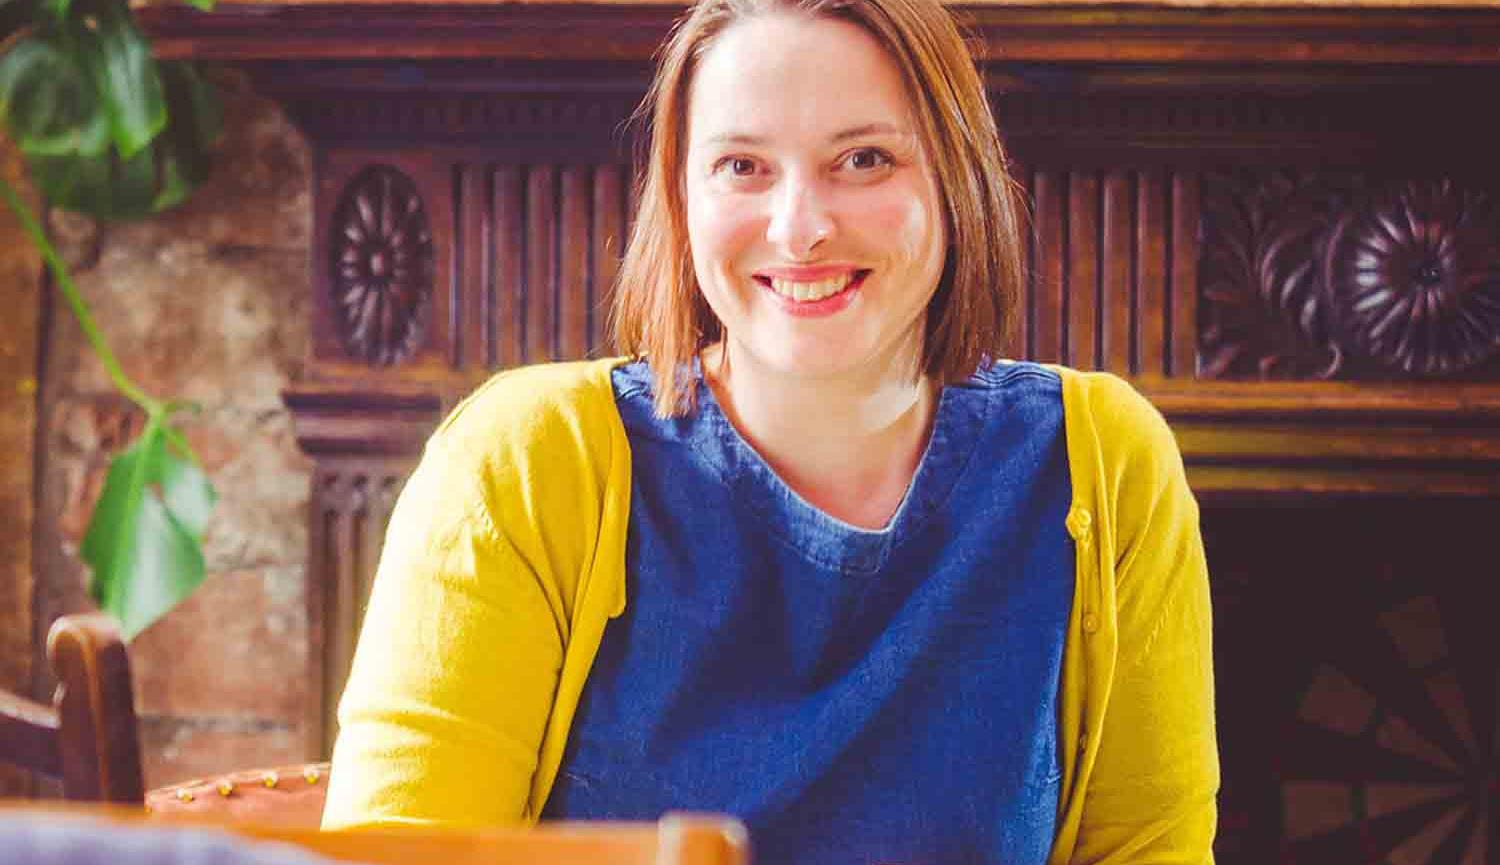 Photo of a woman sitting on a chair wearing a yellow cardigan and a blue top in front of a mantlepiece